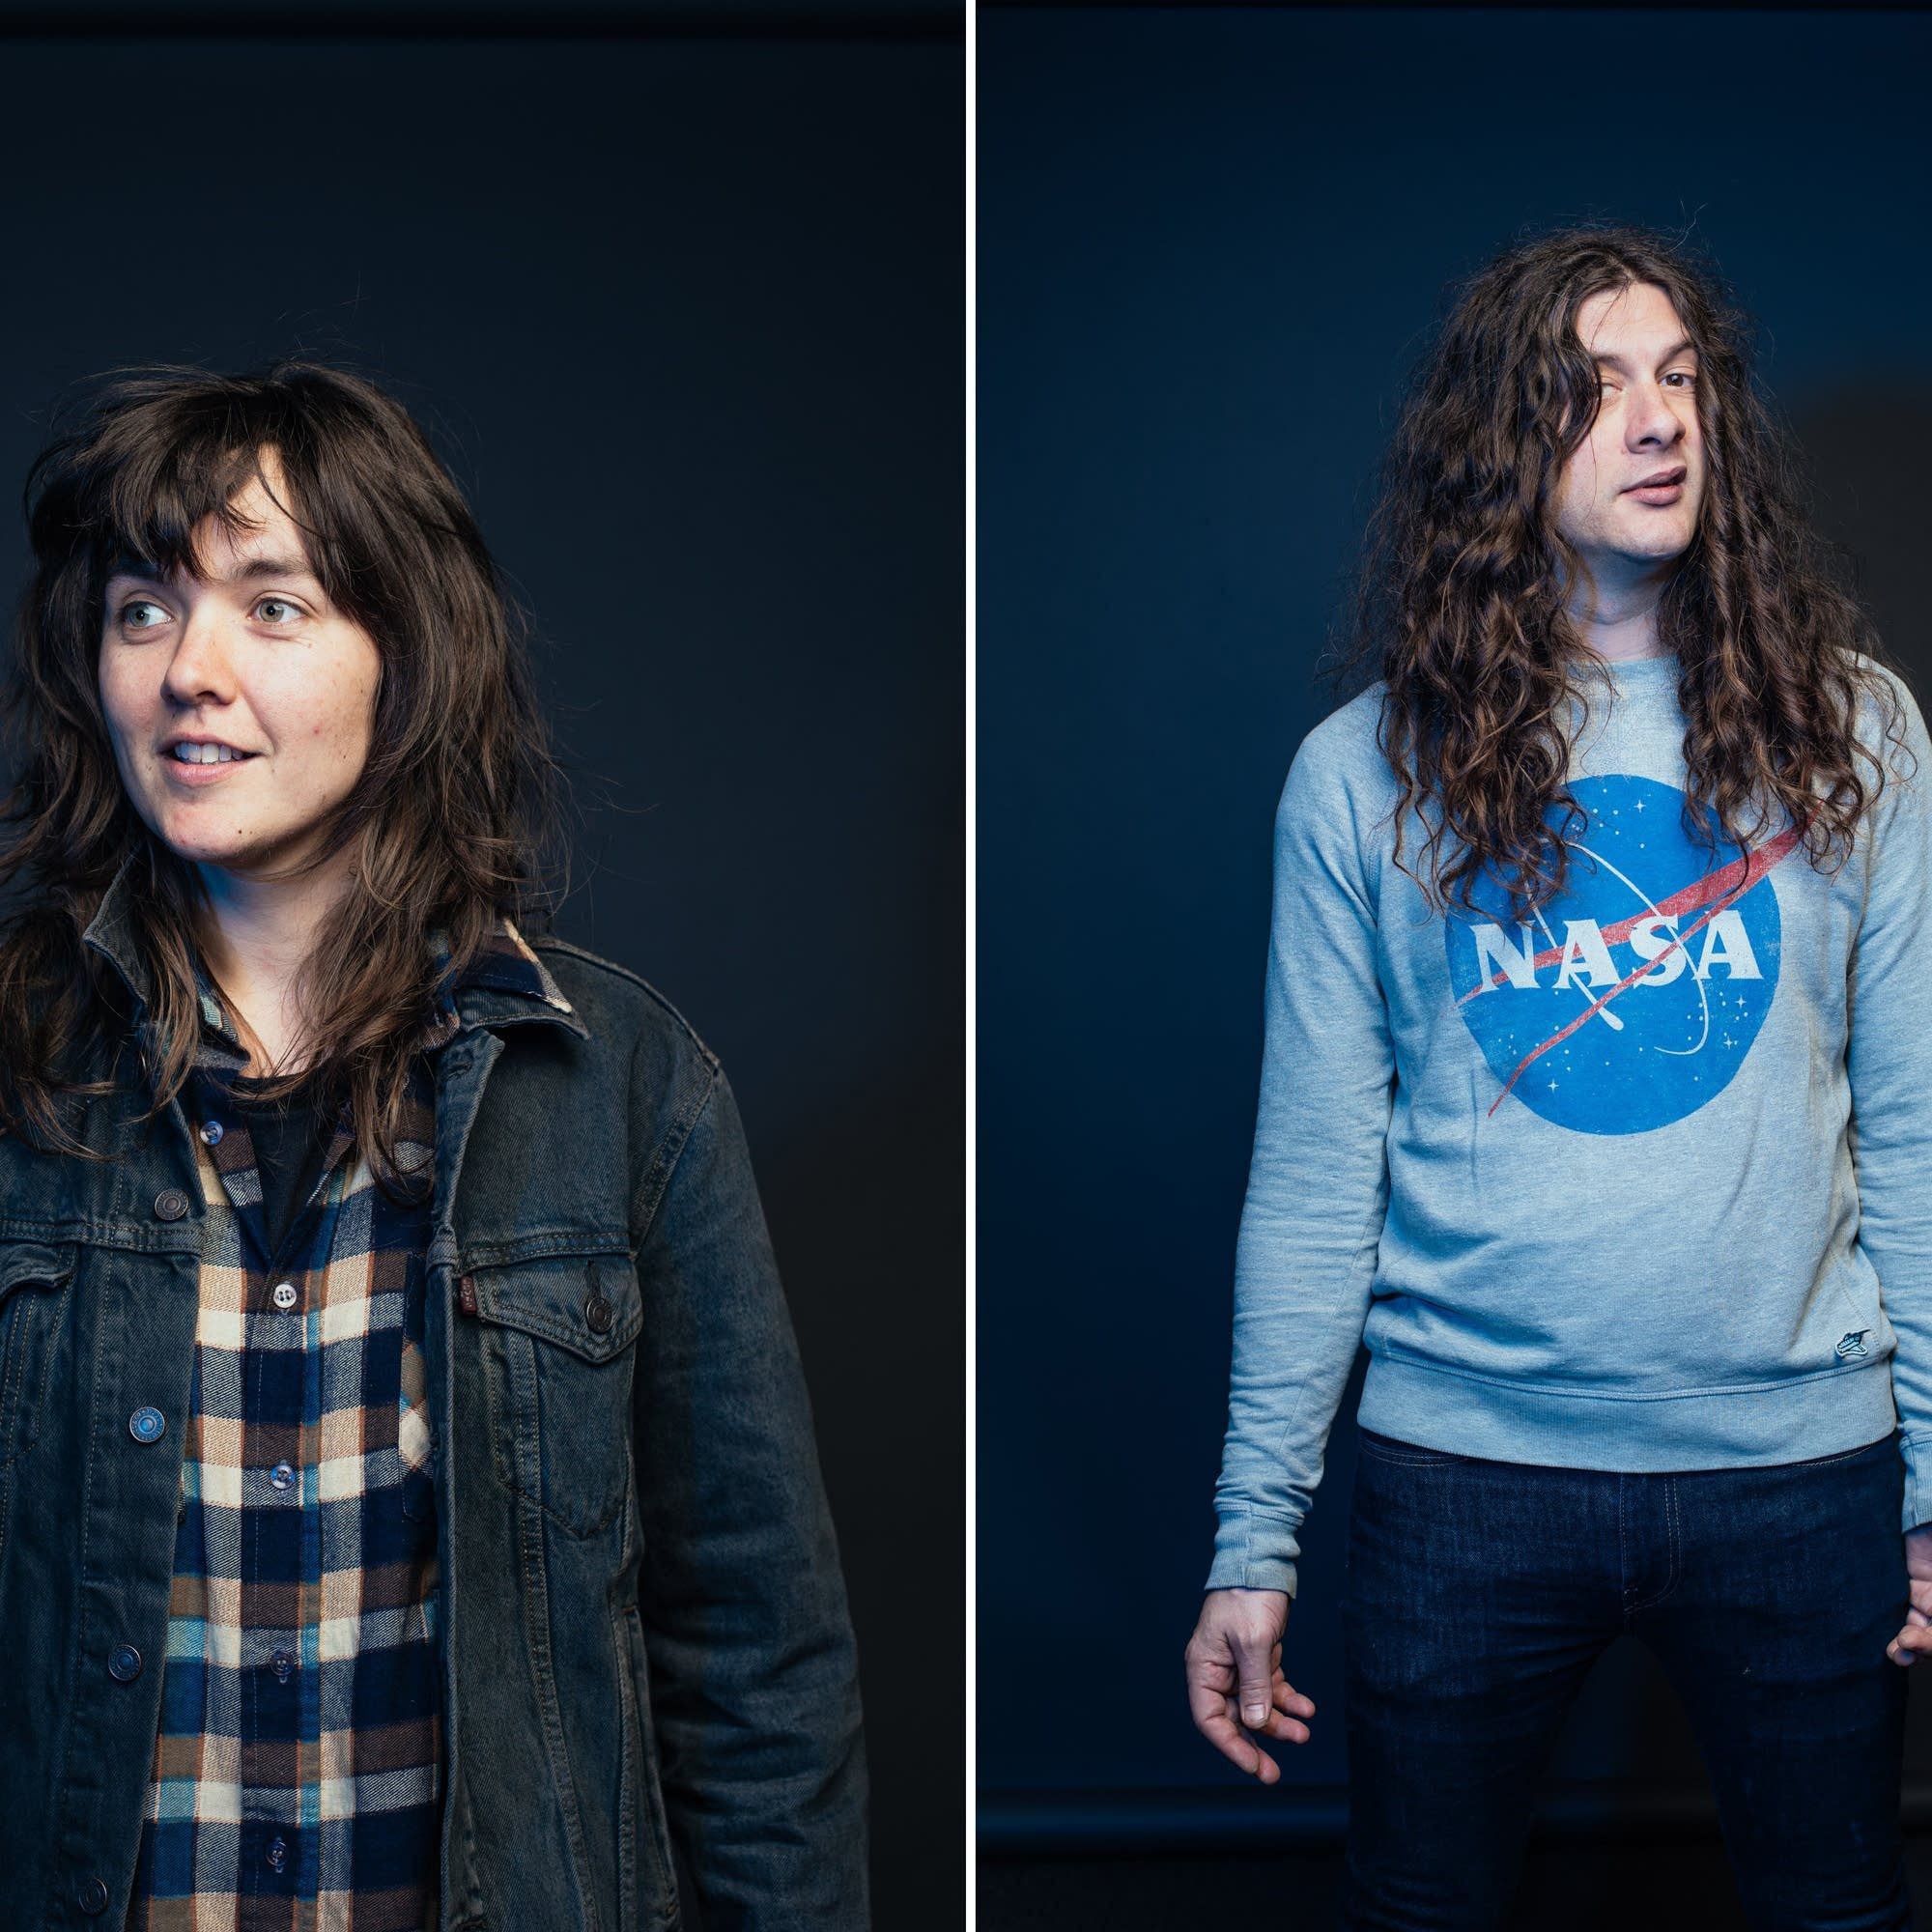 Kurt Vile and Courtney Barnett portraits at The Current